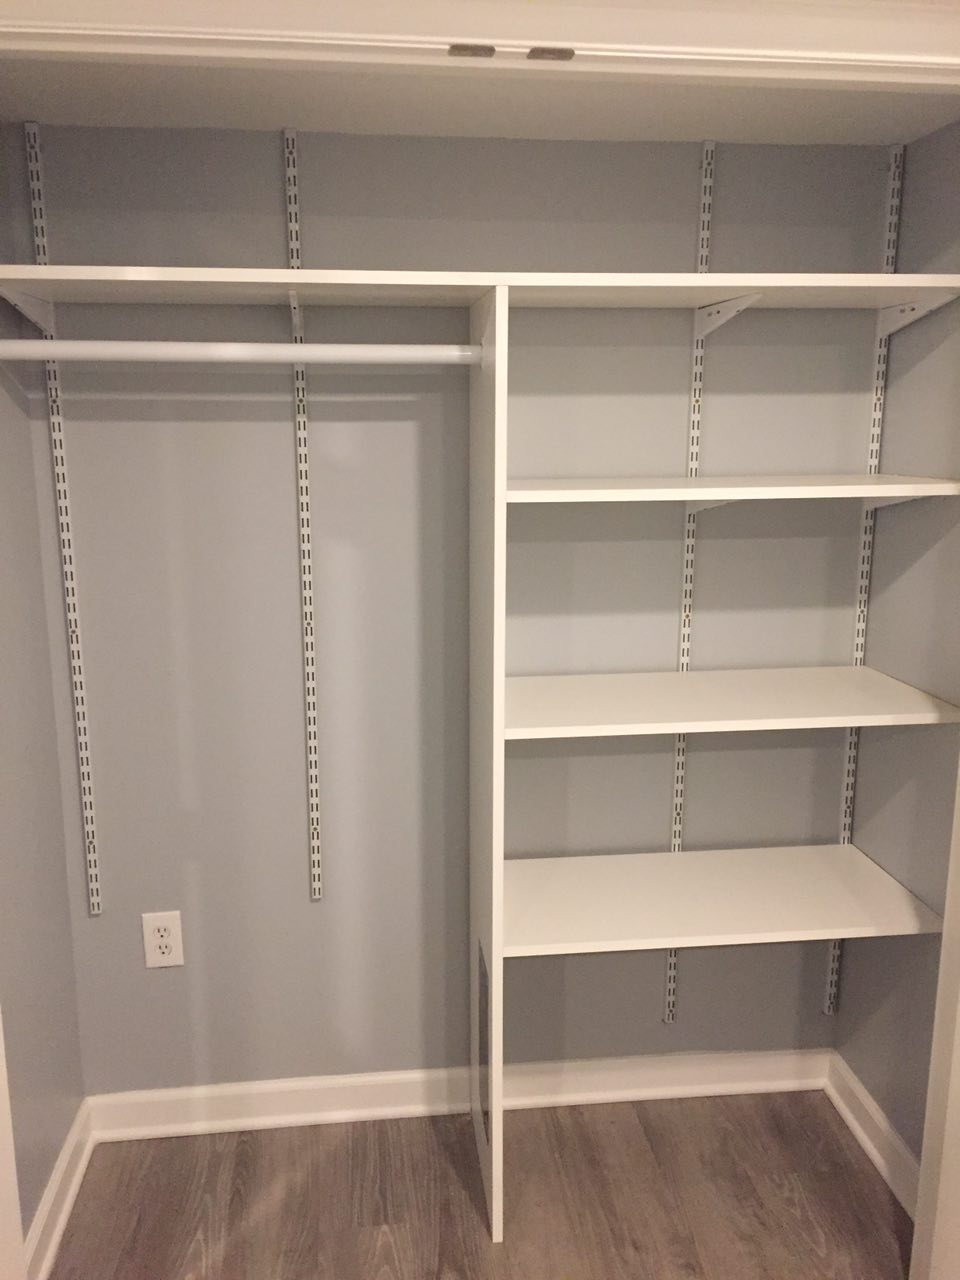 Baltimore City | Shelf repair, after